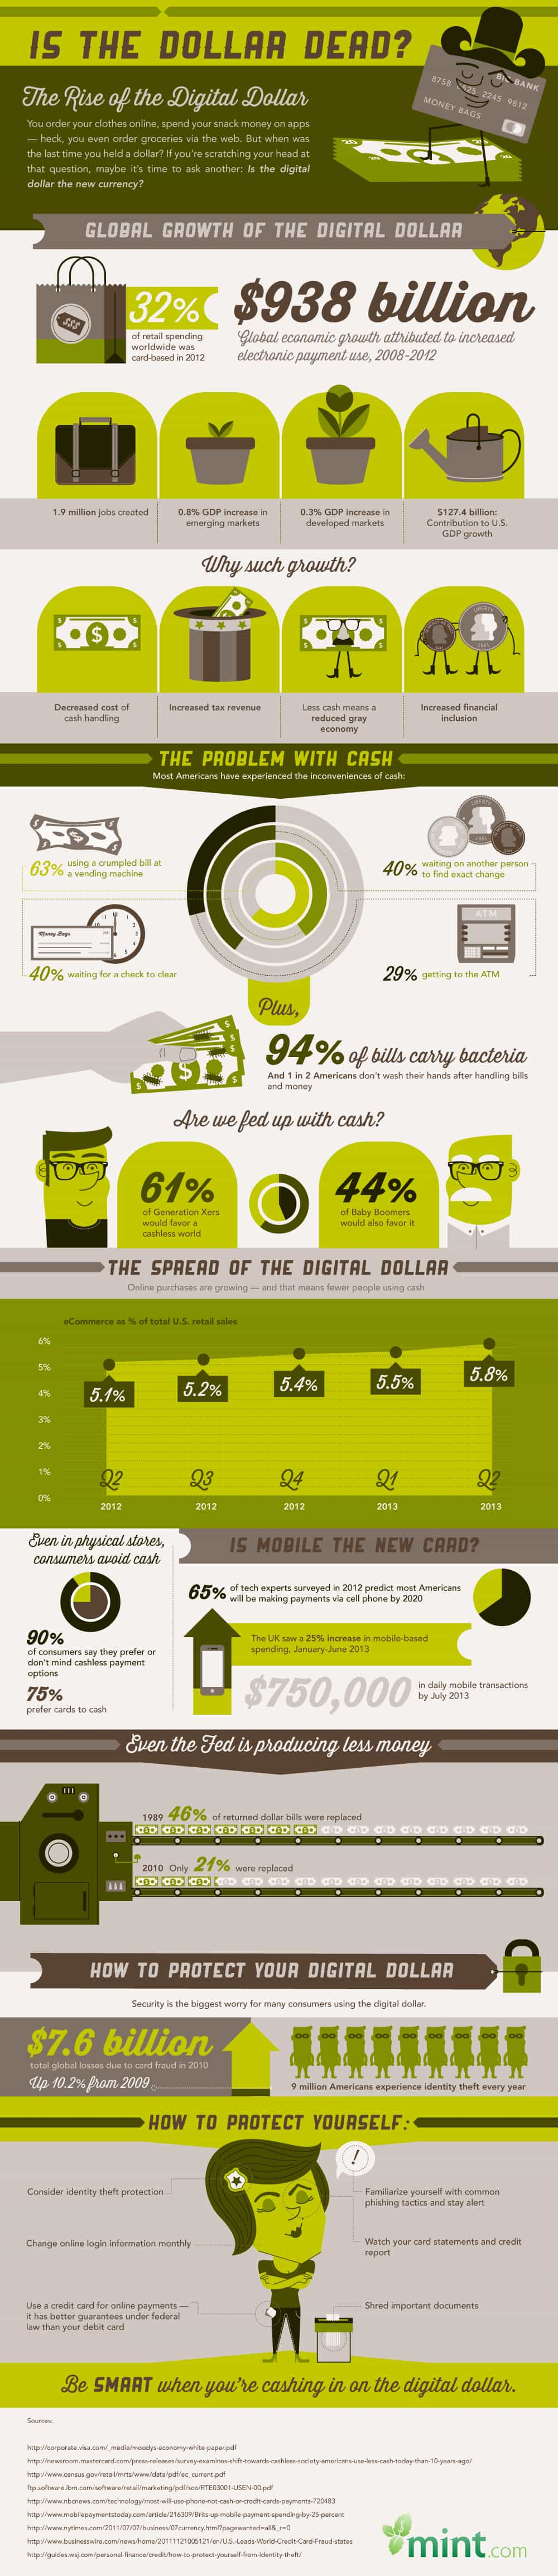 Is the Dollar Dead? The Rise of the Digital Dollar :: Mint.com/blog